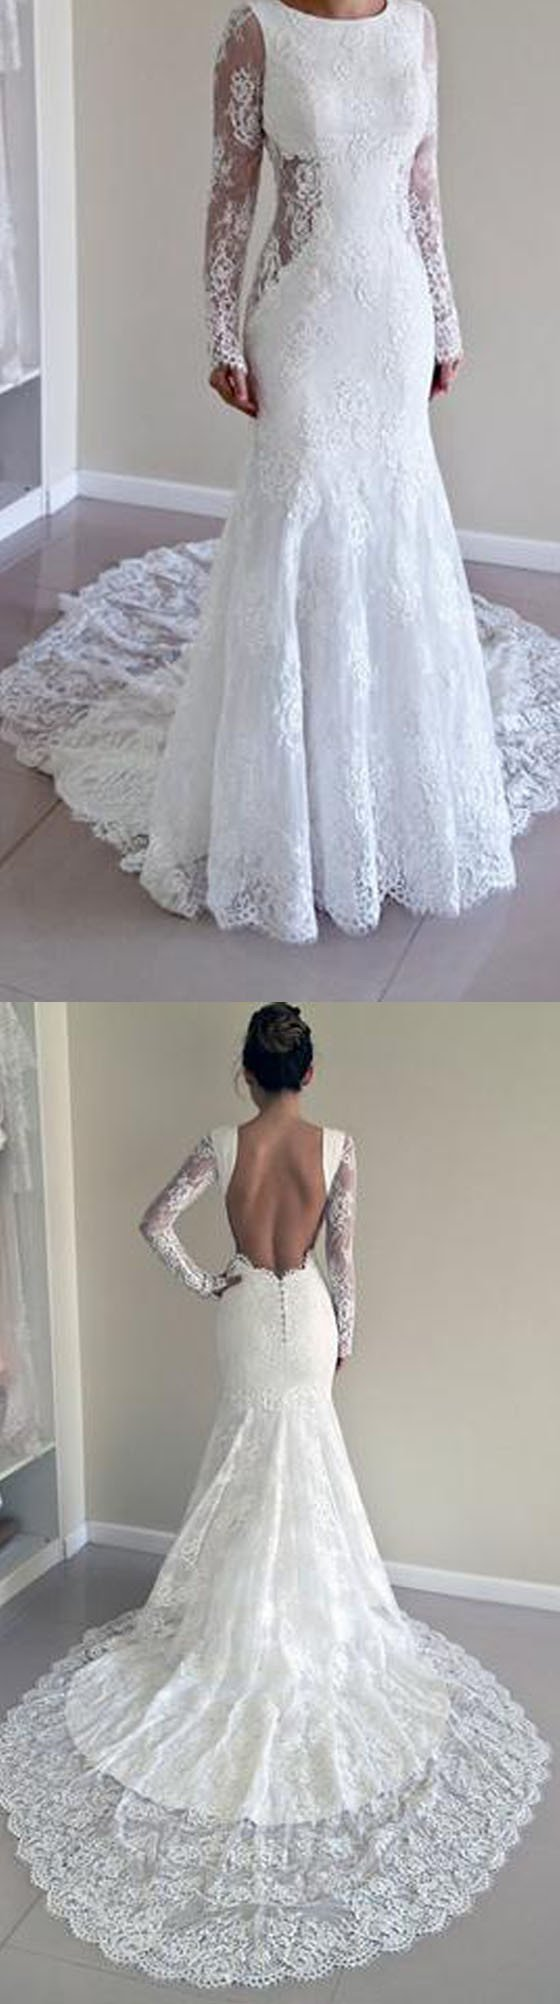 2017 Sexy Full Sleeve Open Back Beautiful Affordable Lace Wedding ...